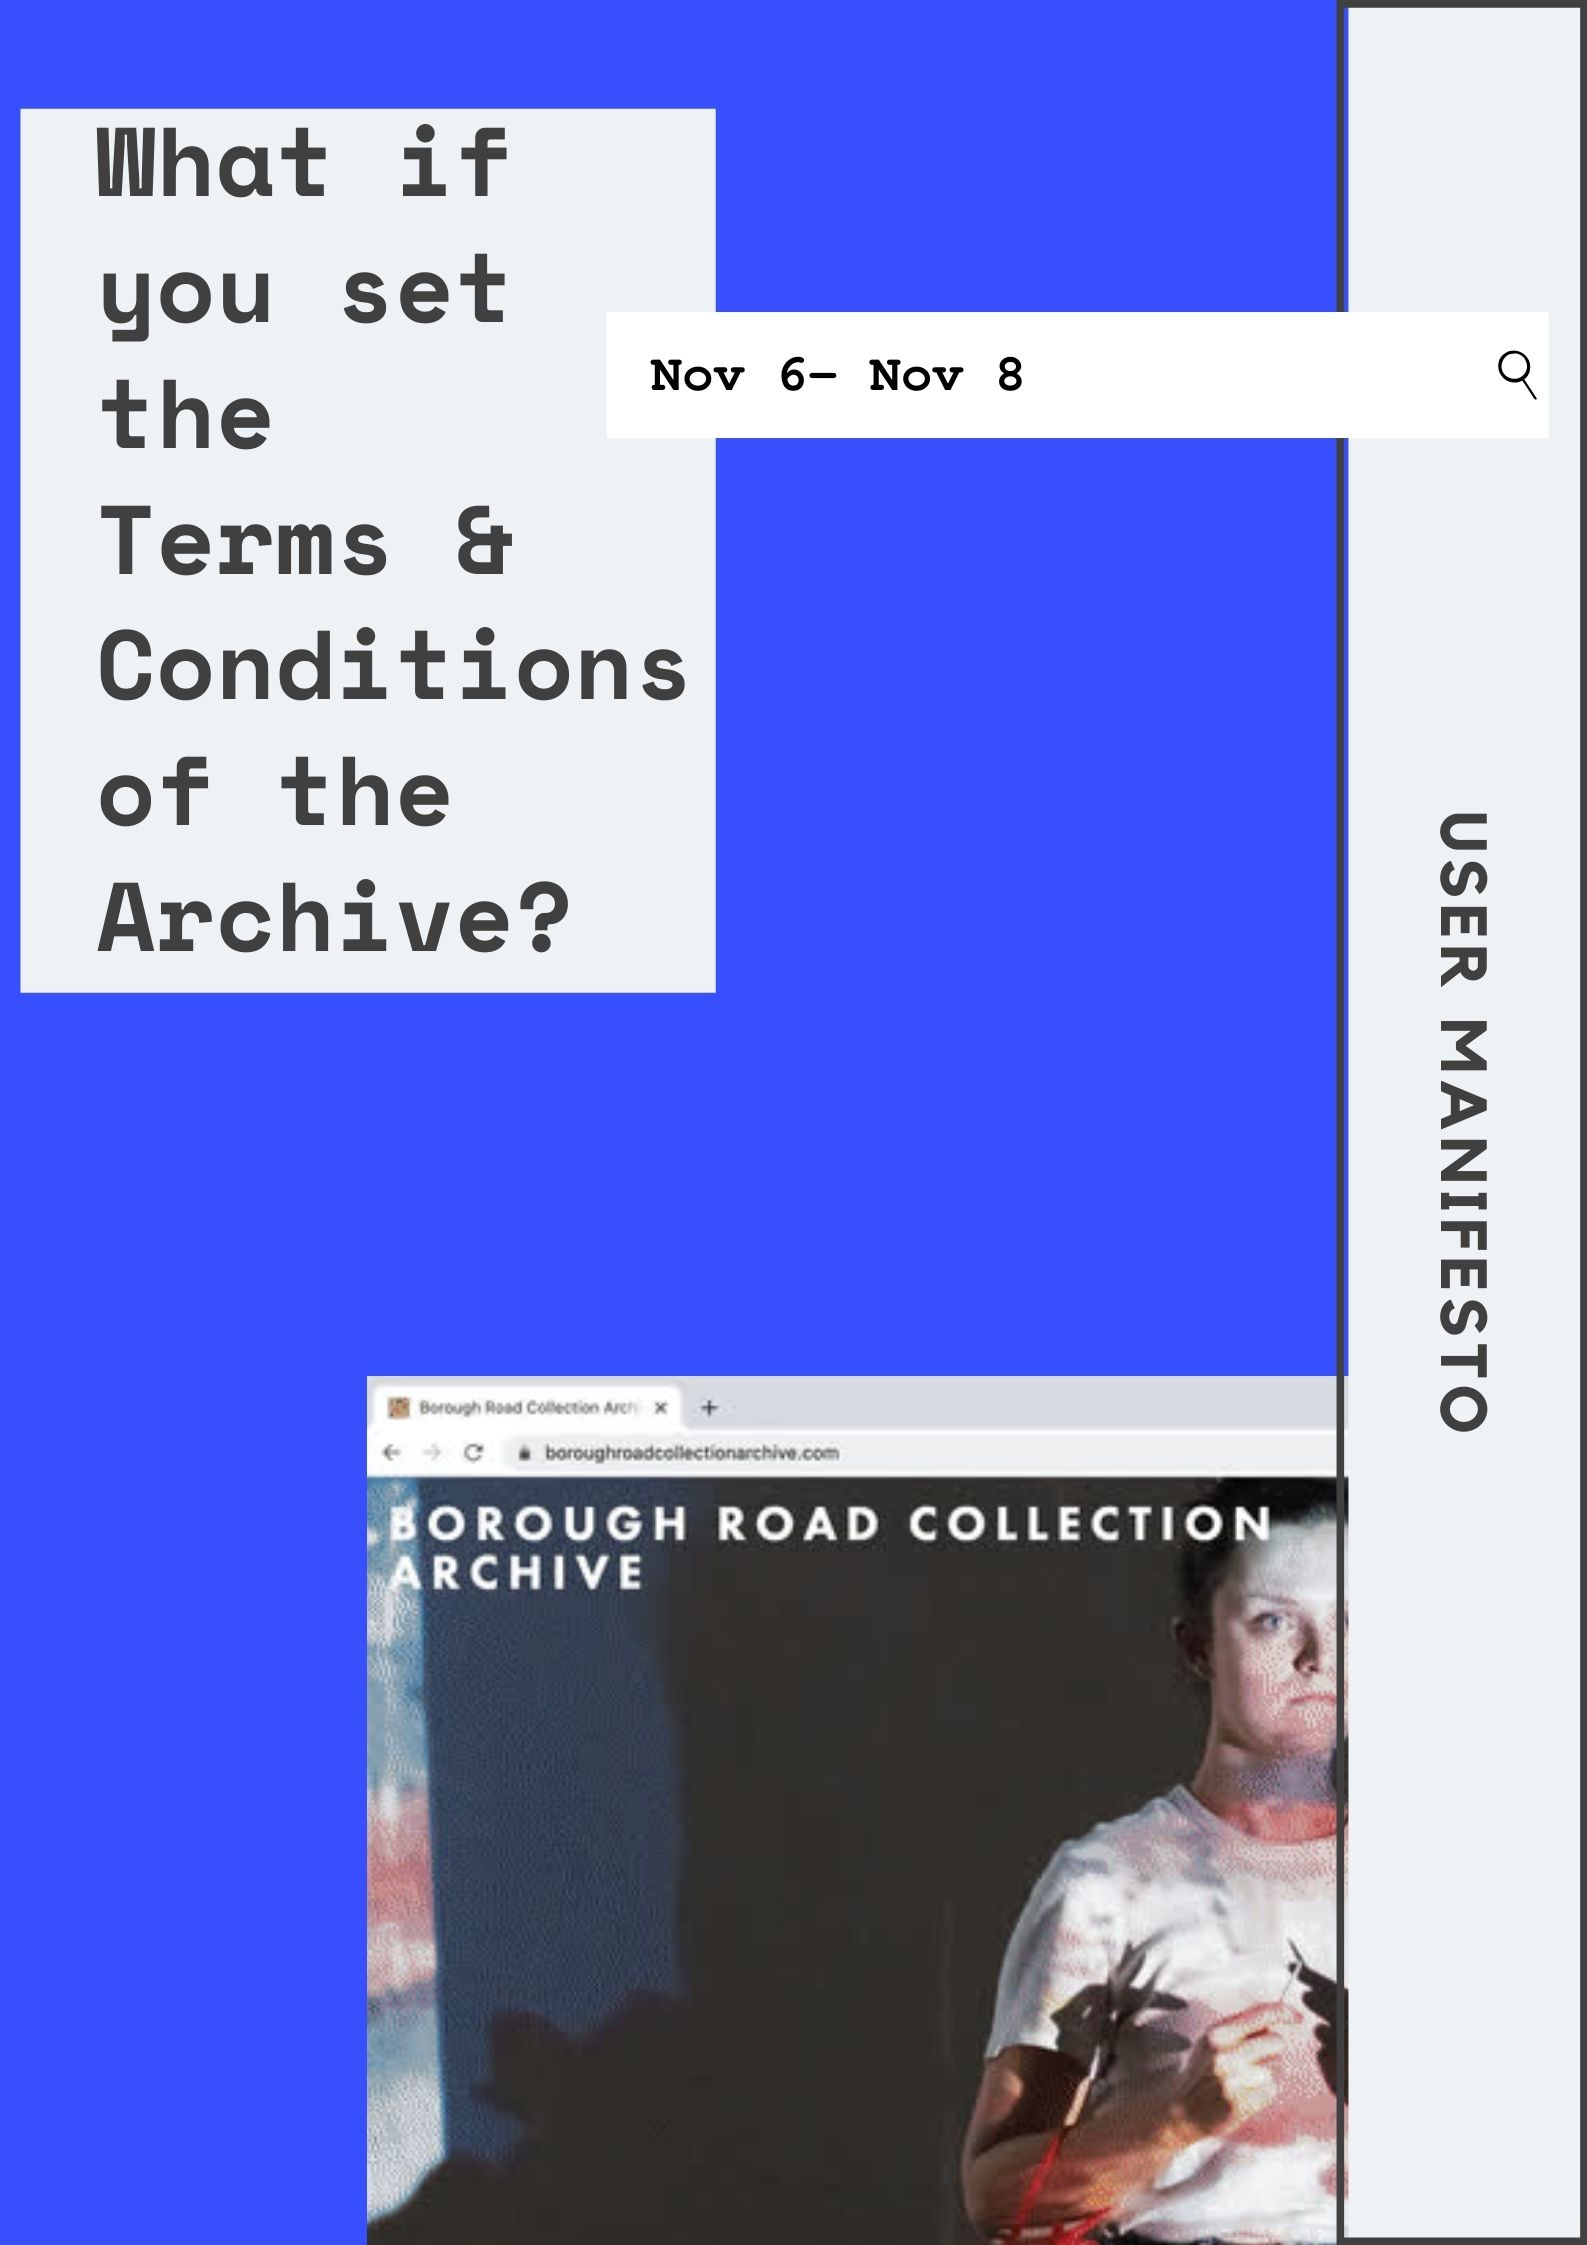 User Manifesto: Borough Road Collection Archive